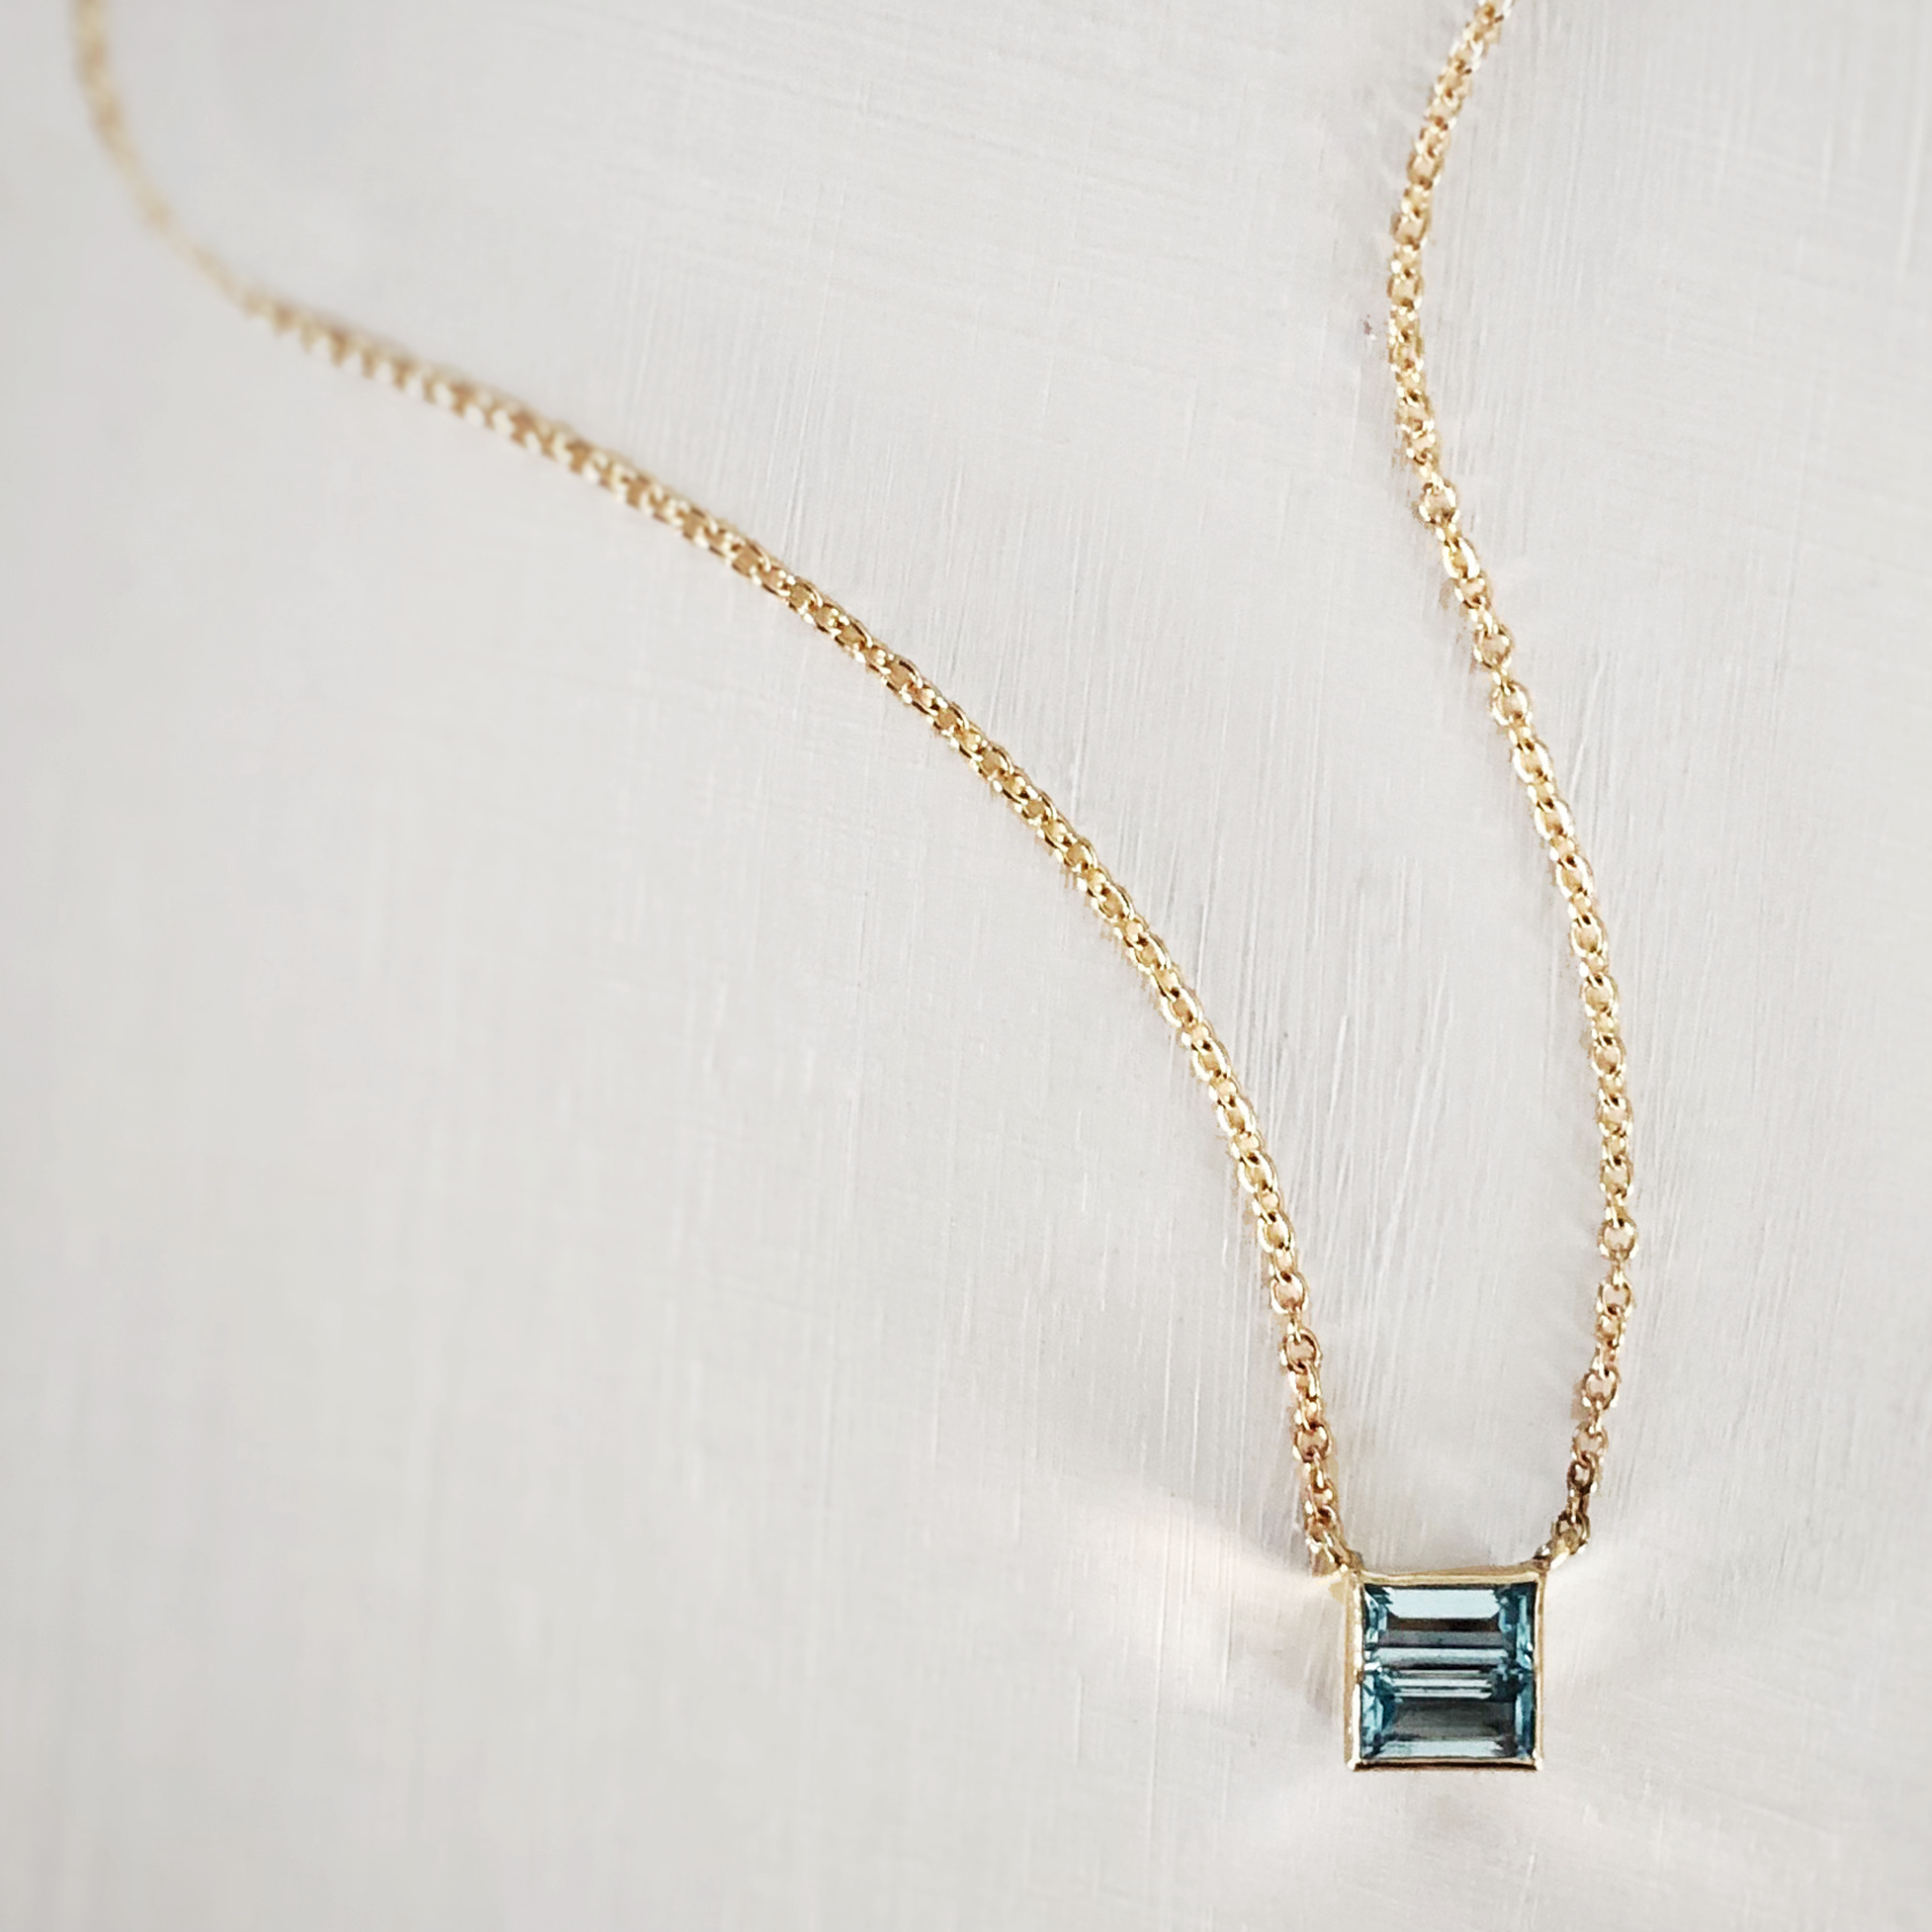 Ellen Square Necklace - 14k Yellow Gold with Blue Topaz